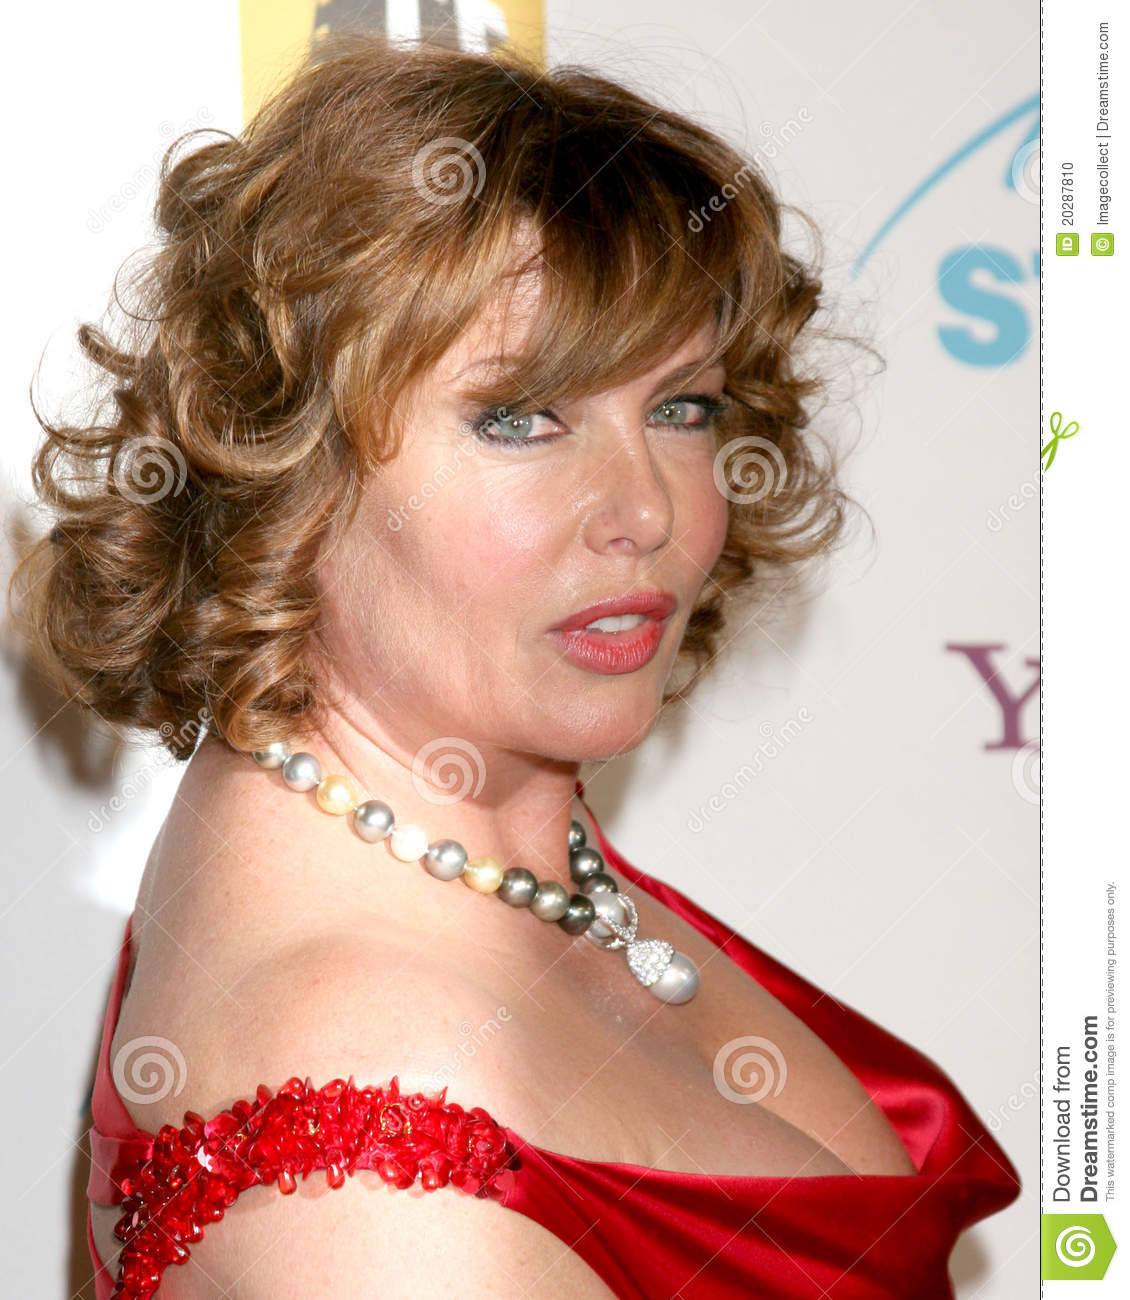 kelly lebrock images